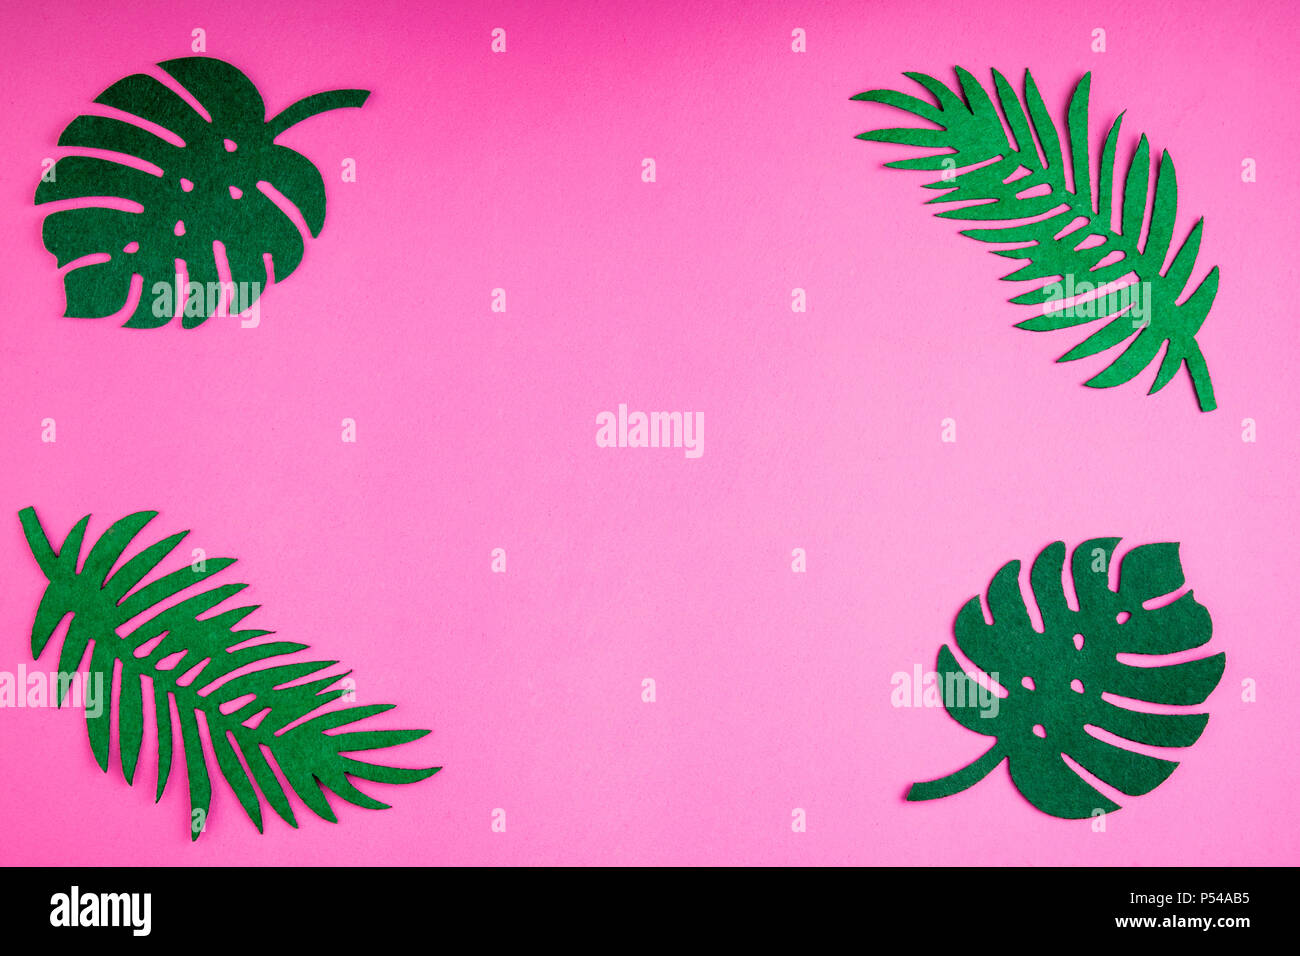 Summer Trendy Background With Leaves On Pink Handmade Palm Felt Toy Idea Art Crafts For Kids In Camp Arts Top View